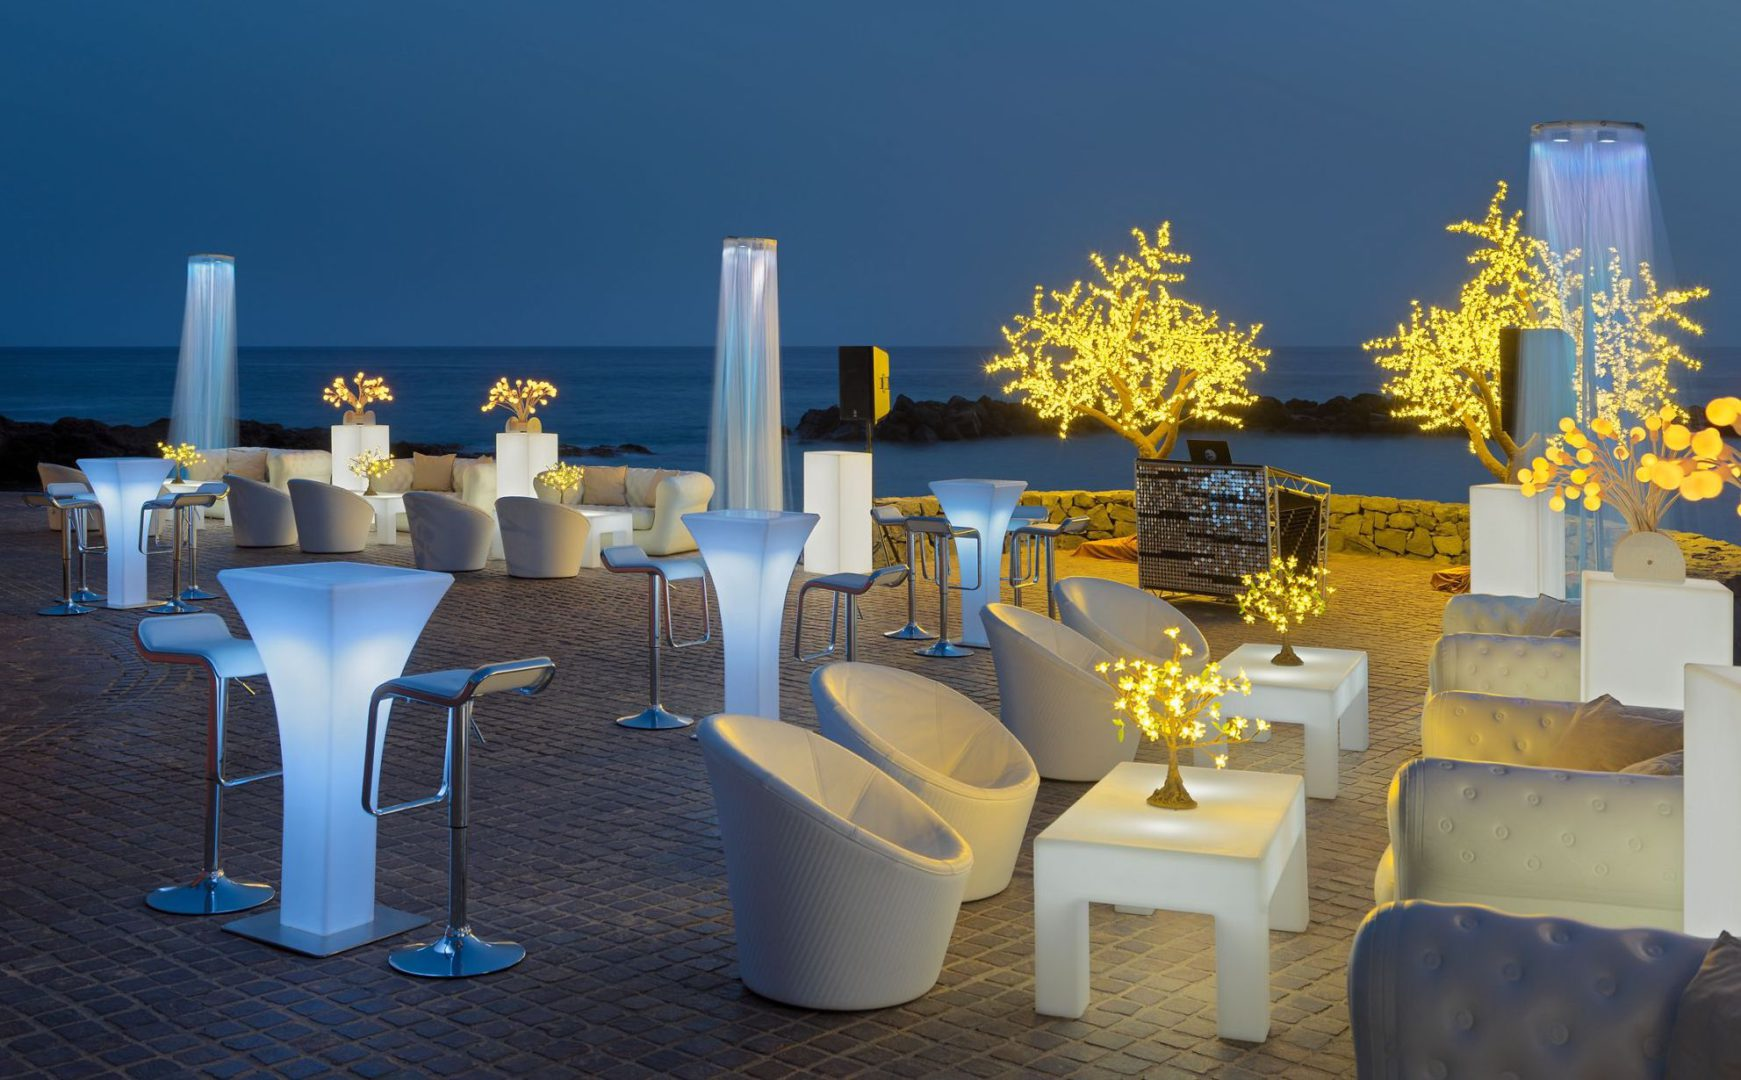 50550823-Beach Club terrace with Chill Out set up at night - natural light